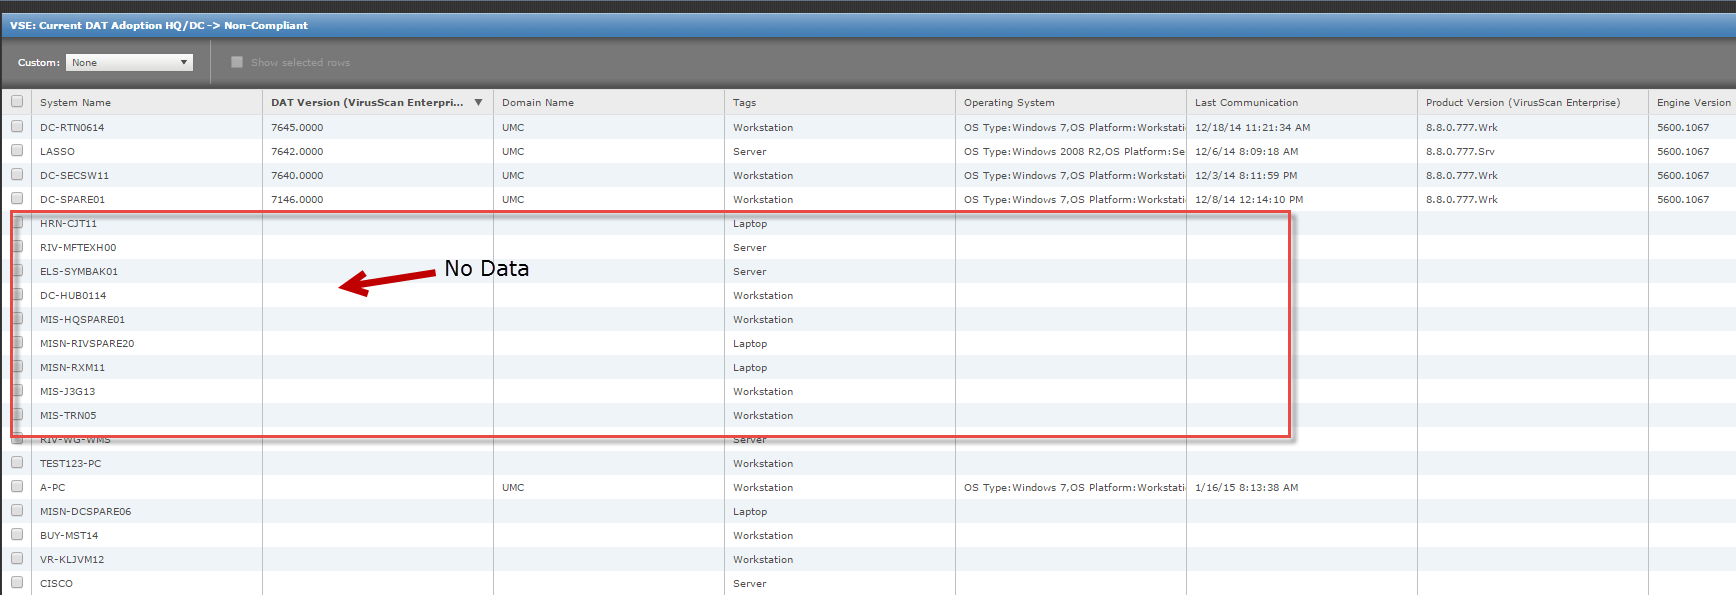 How do I use the ePolicy Orchestrator 4 6 to remediate outdated